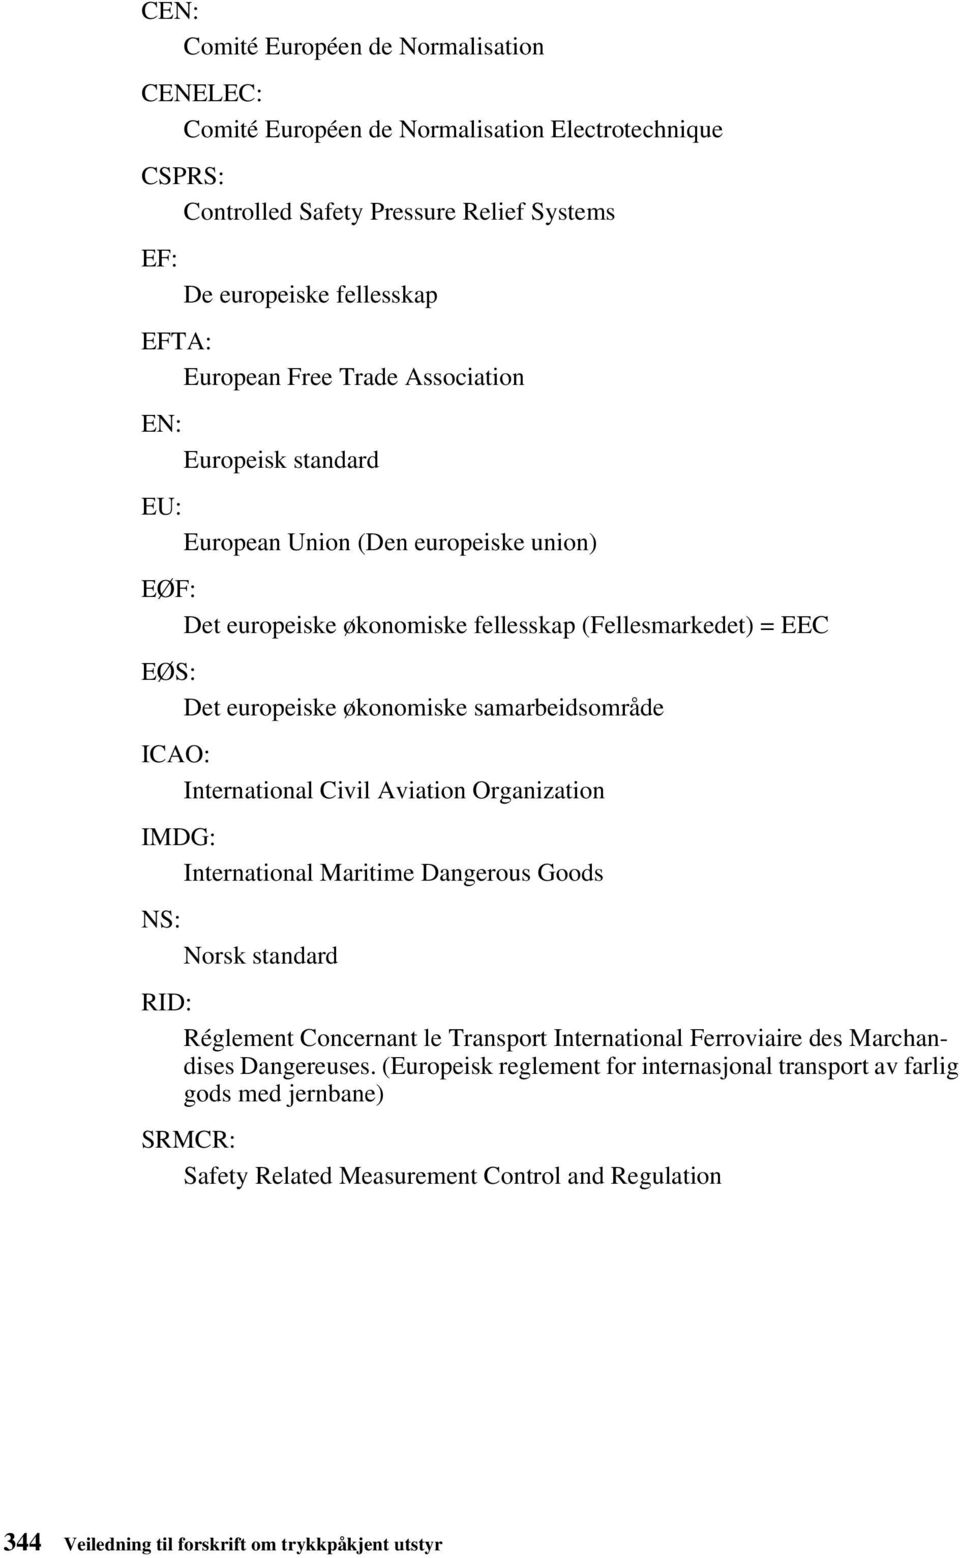 ICAO: International Civil Aviation Organization IMDG: International Maritime Dangerous Goods NS: Norsk standard RID: Réglement Concernant le Transport International Ferroviaire des Marchandises